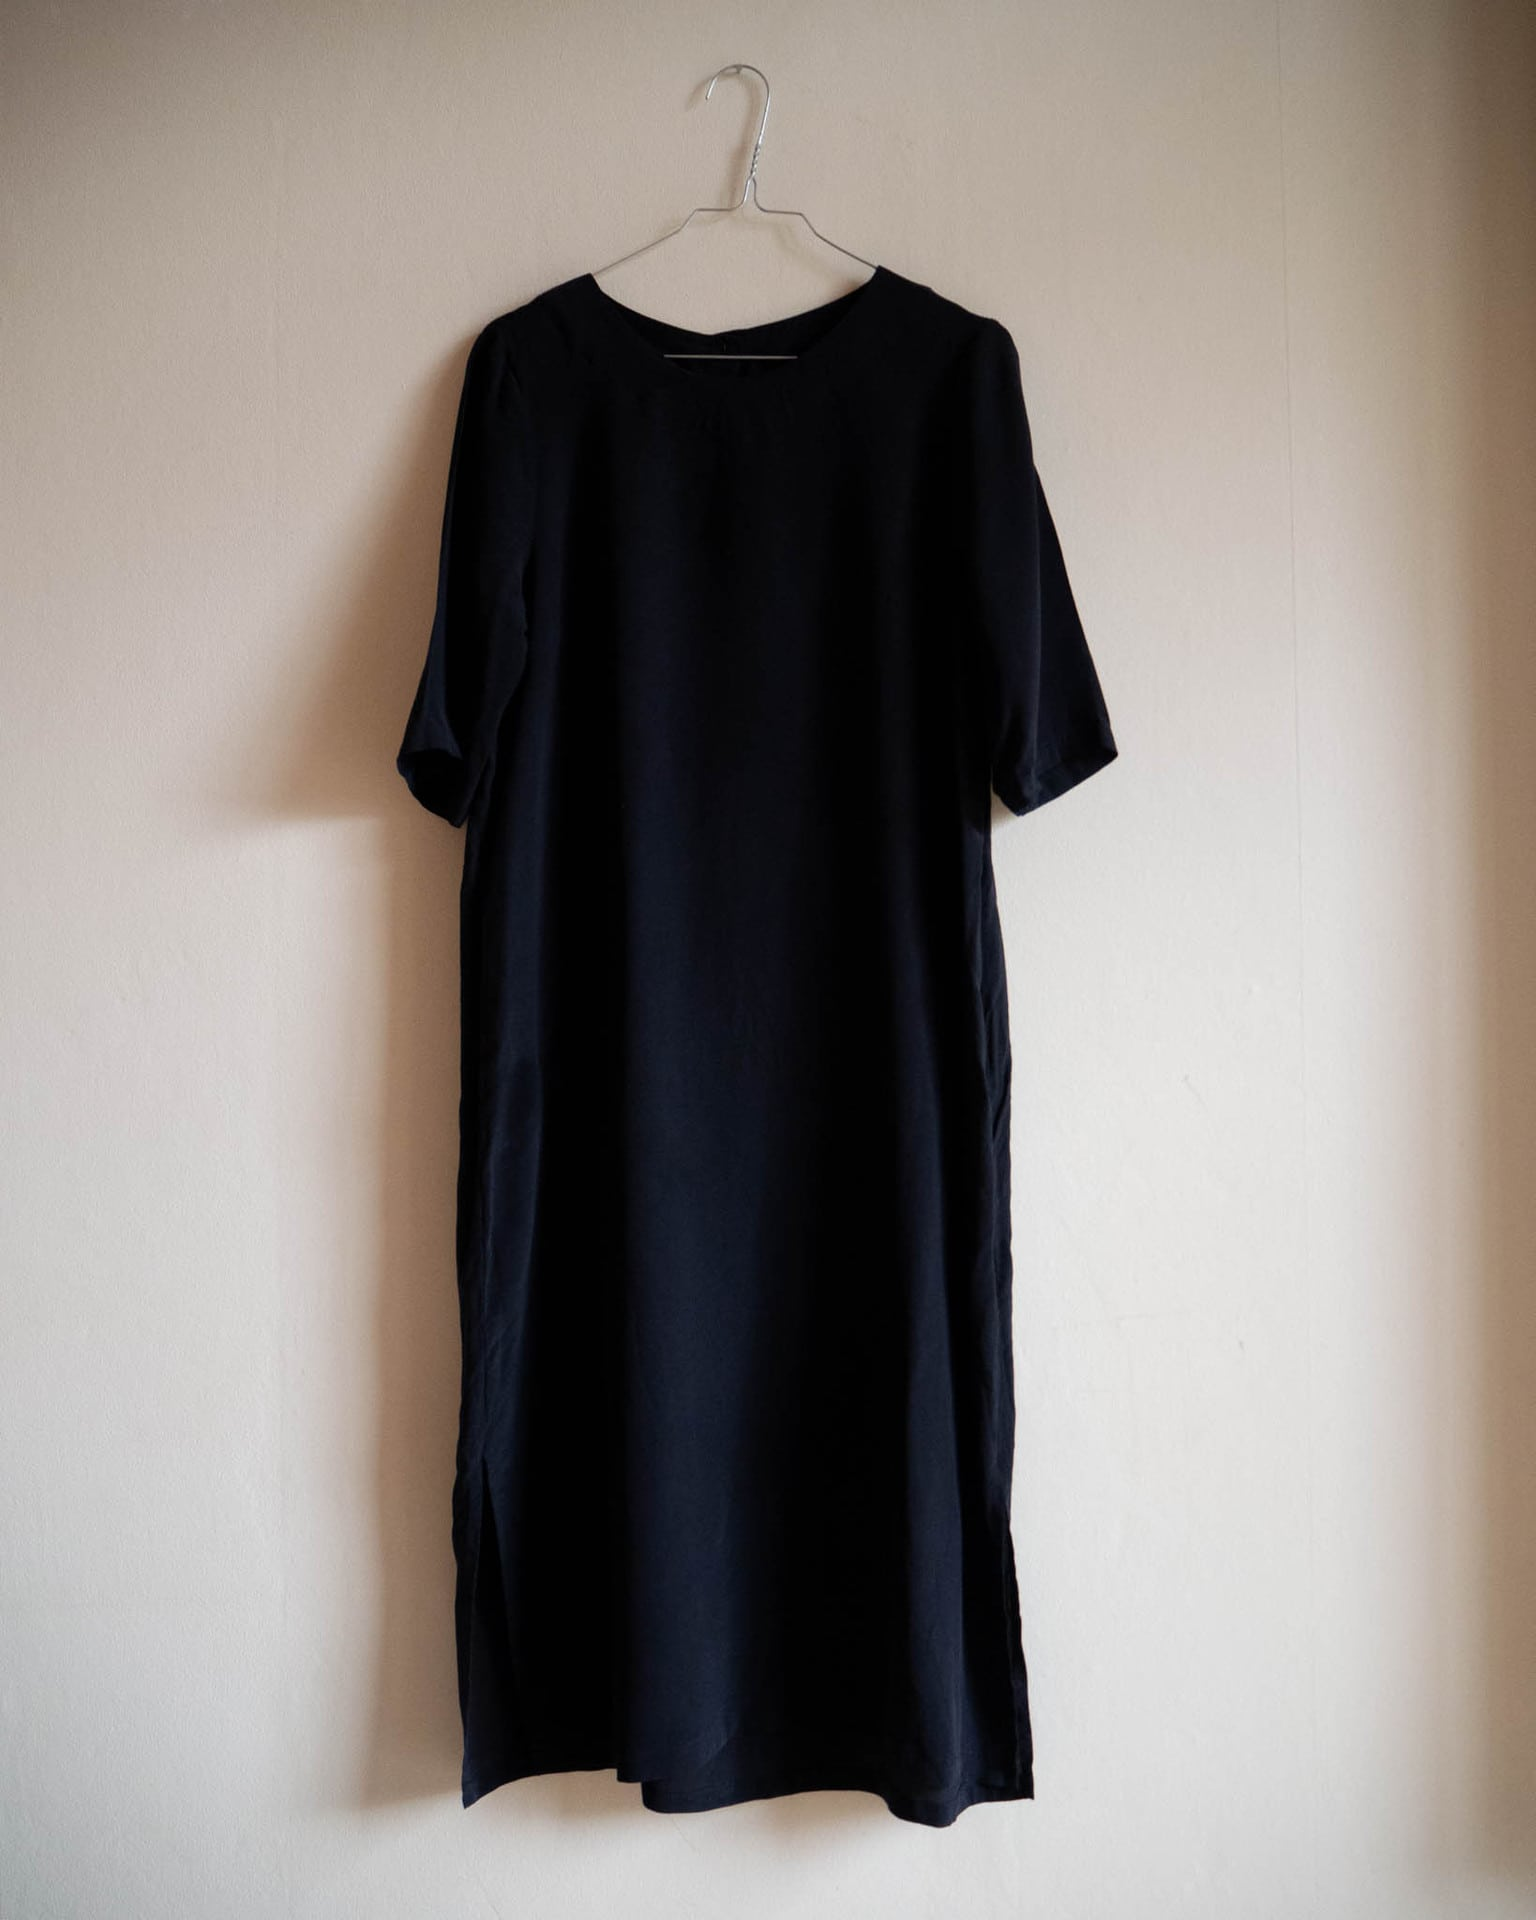 DOCCA DRESS BLACK